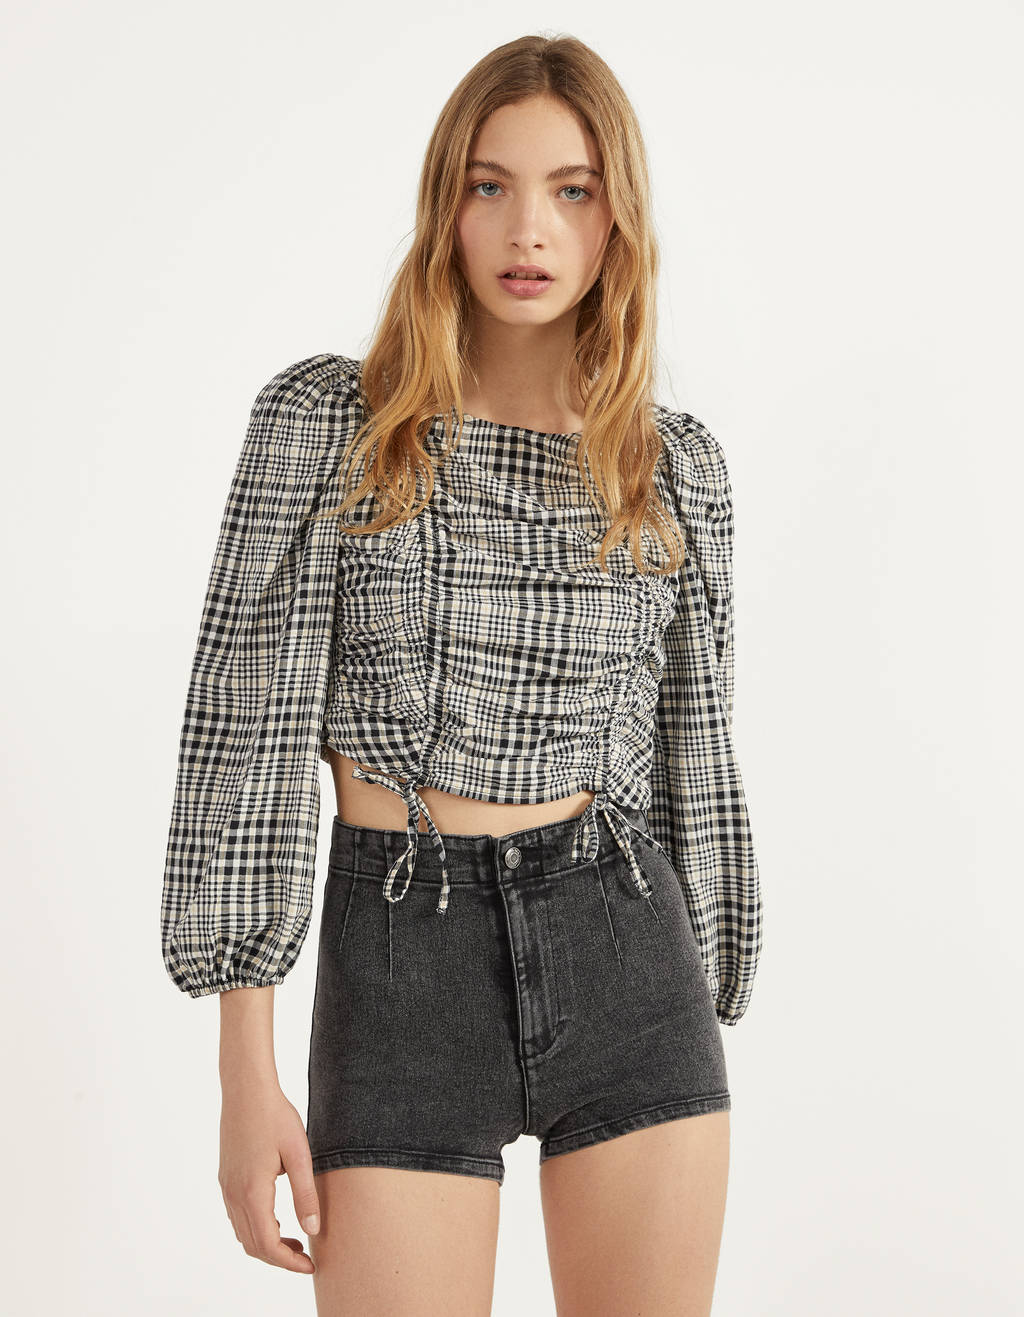 High waist denim skorts